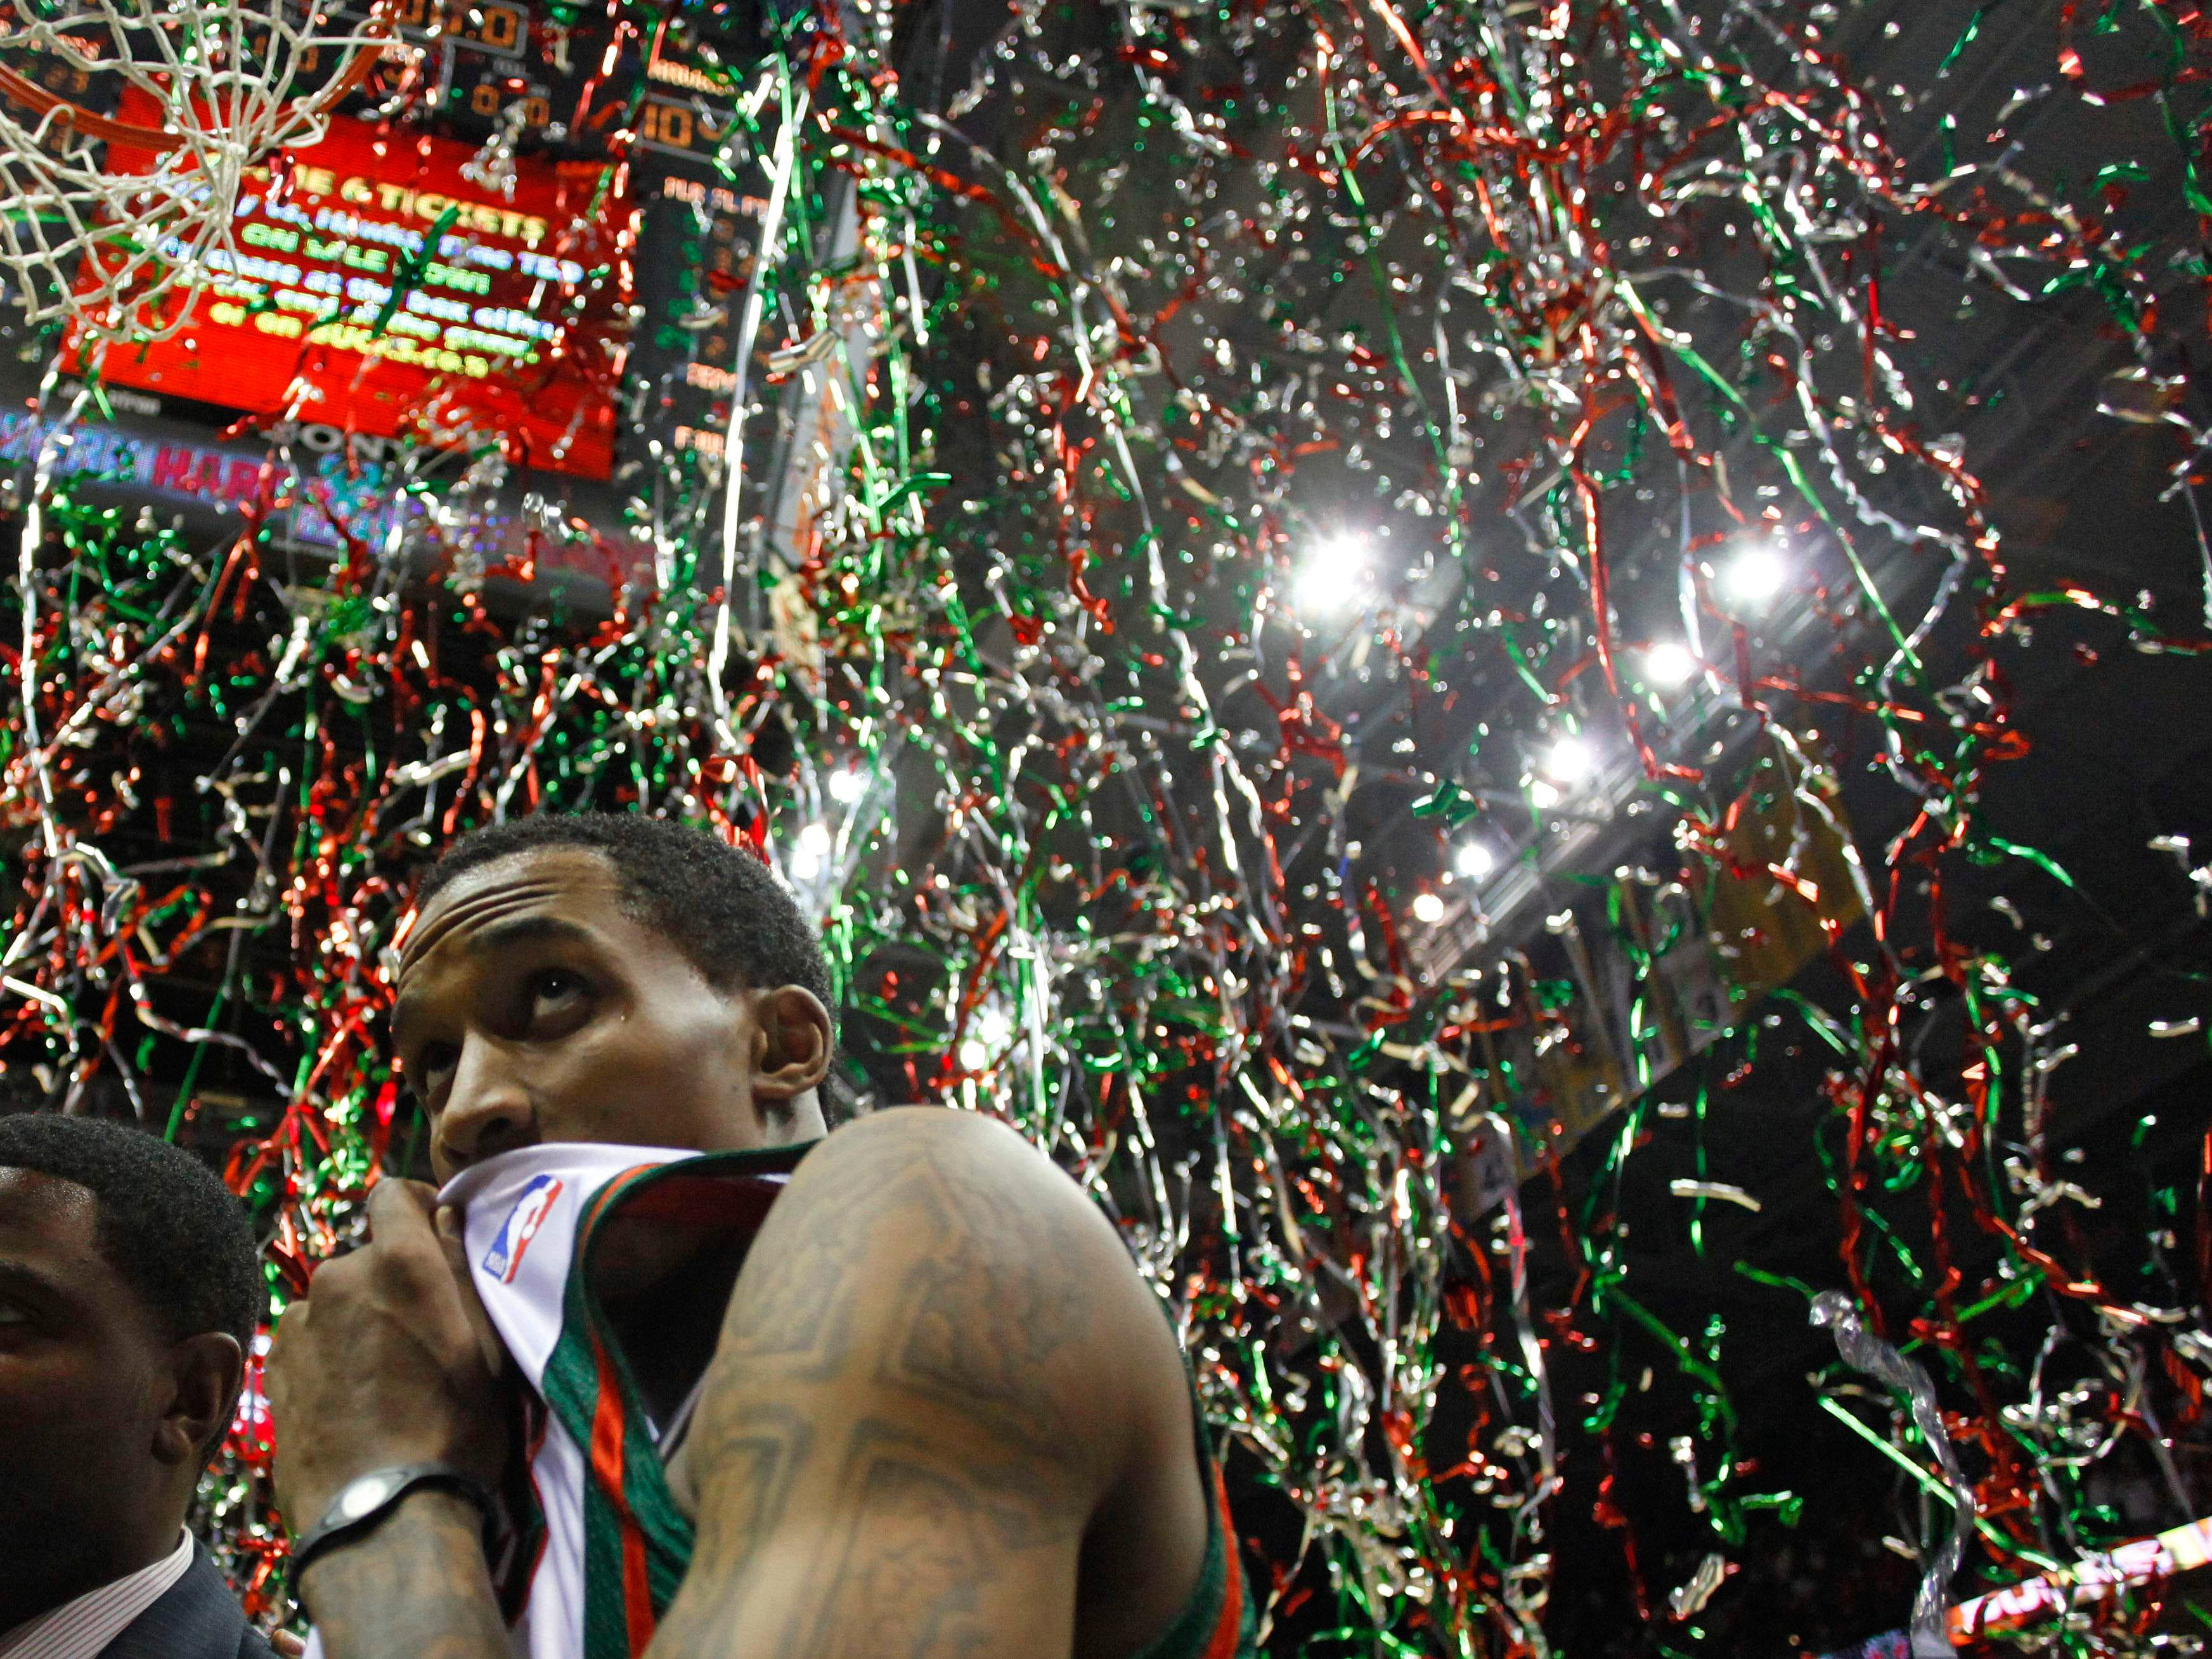 2010: Milwaukee's Brandon Jennings is showered with confetti after the Bucks won Game 4 of the first-round Eastern Conference playoffs, 111-104, on April 26, 2010, at the Bradley Center. The Hawks ended up beating the Bucks in seven games.